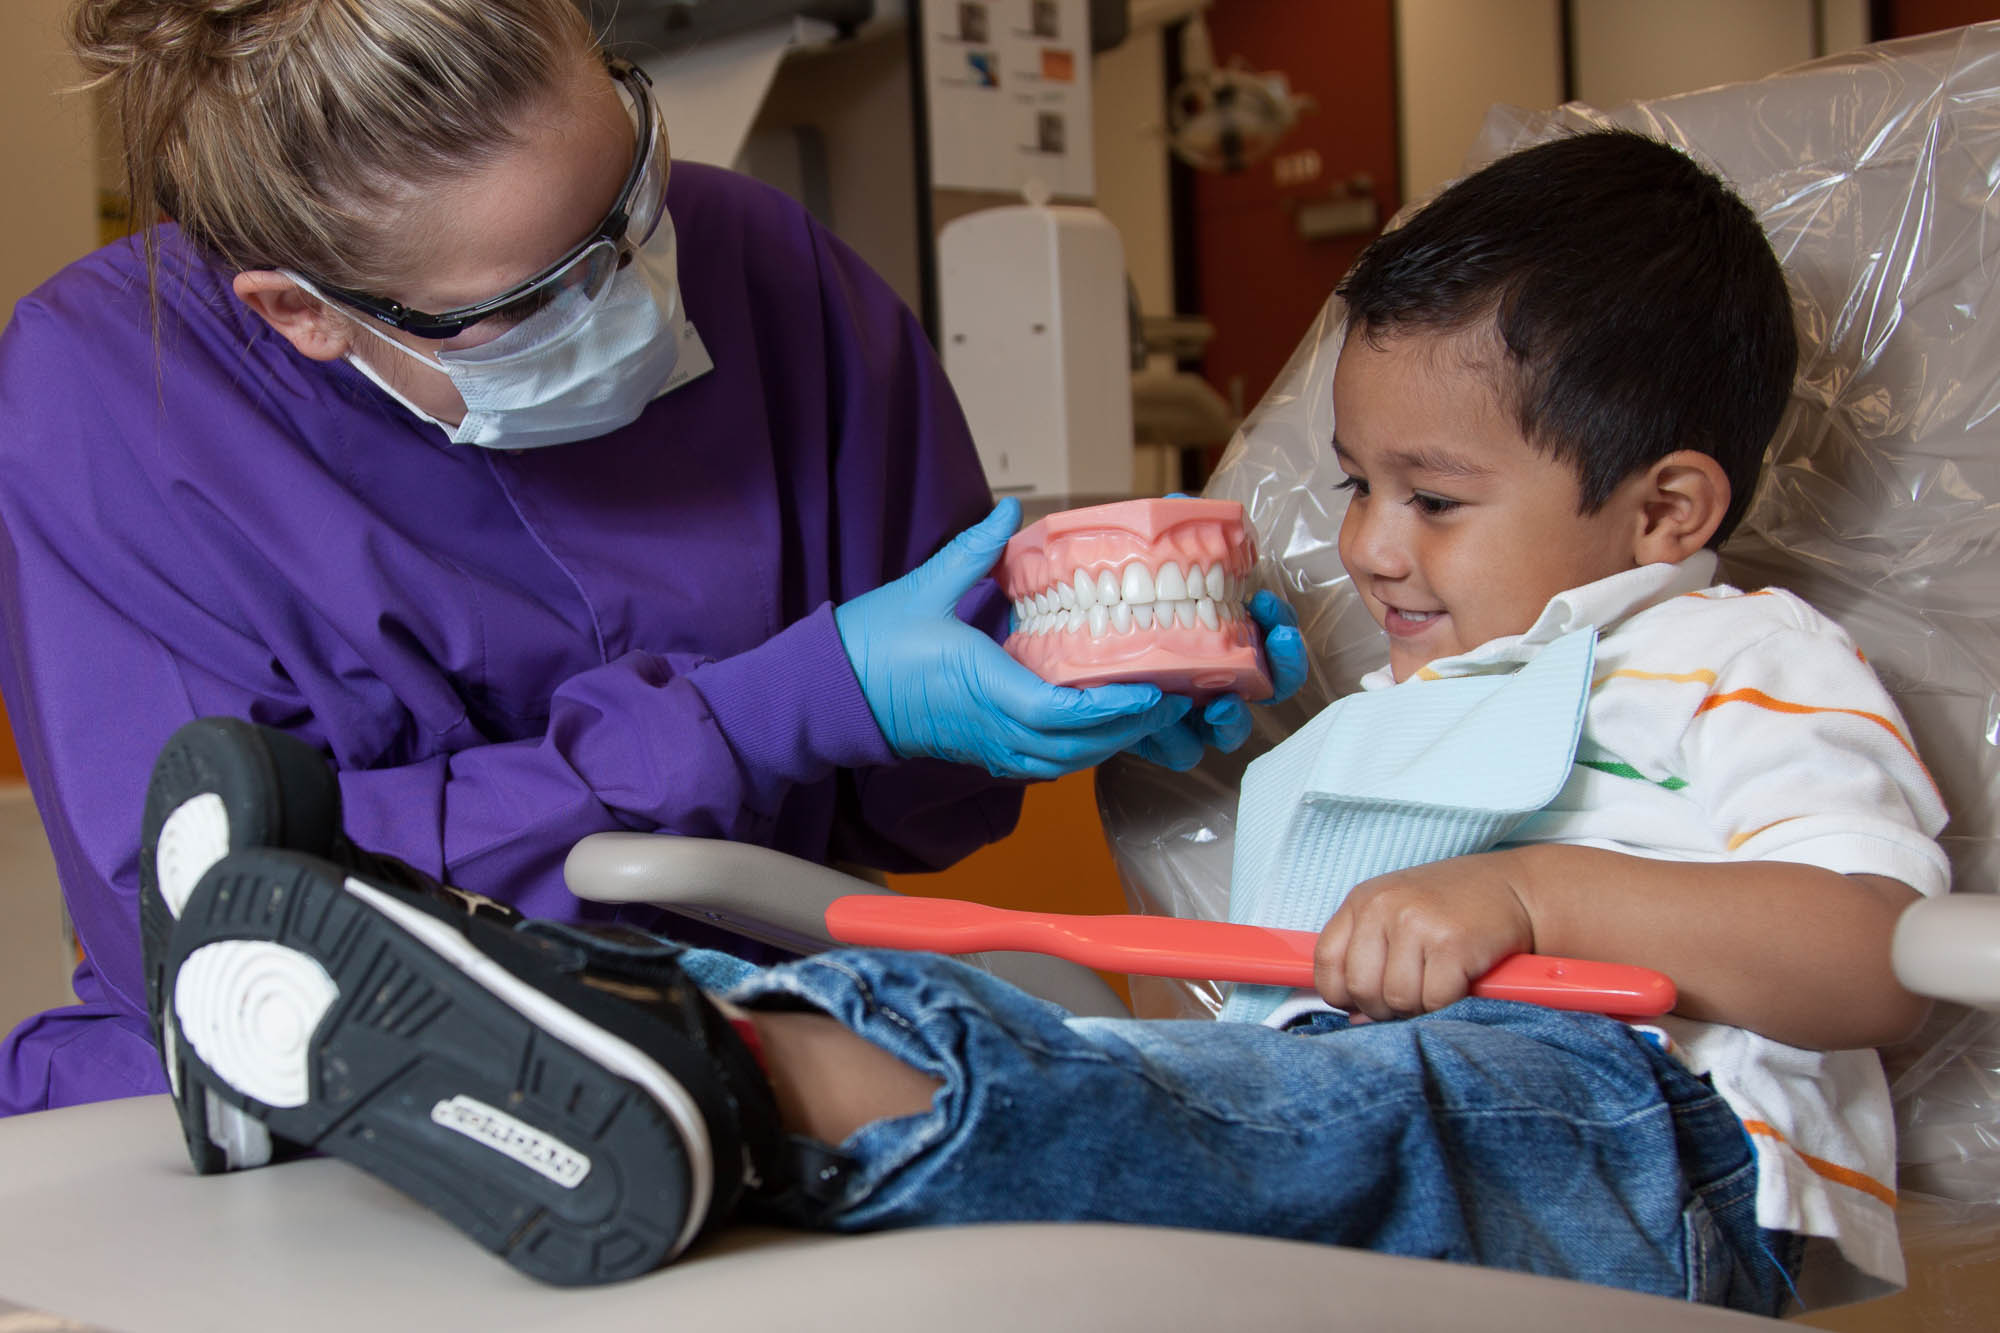 Dental student with a child patient